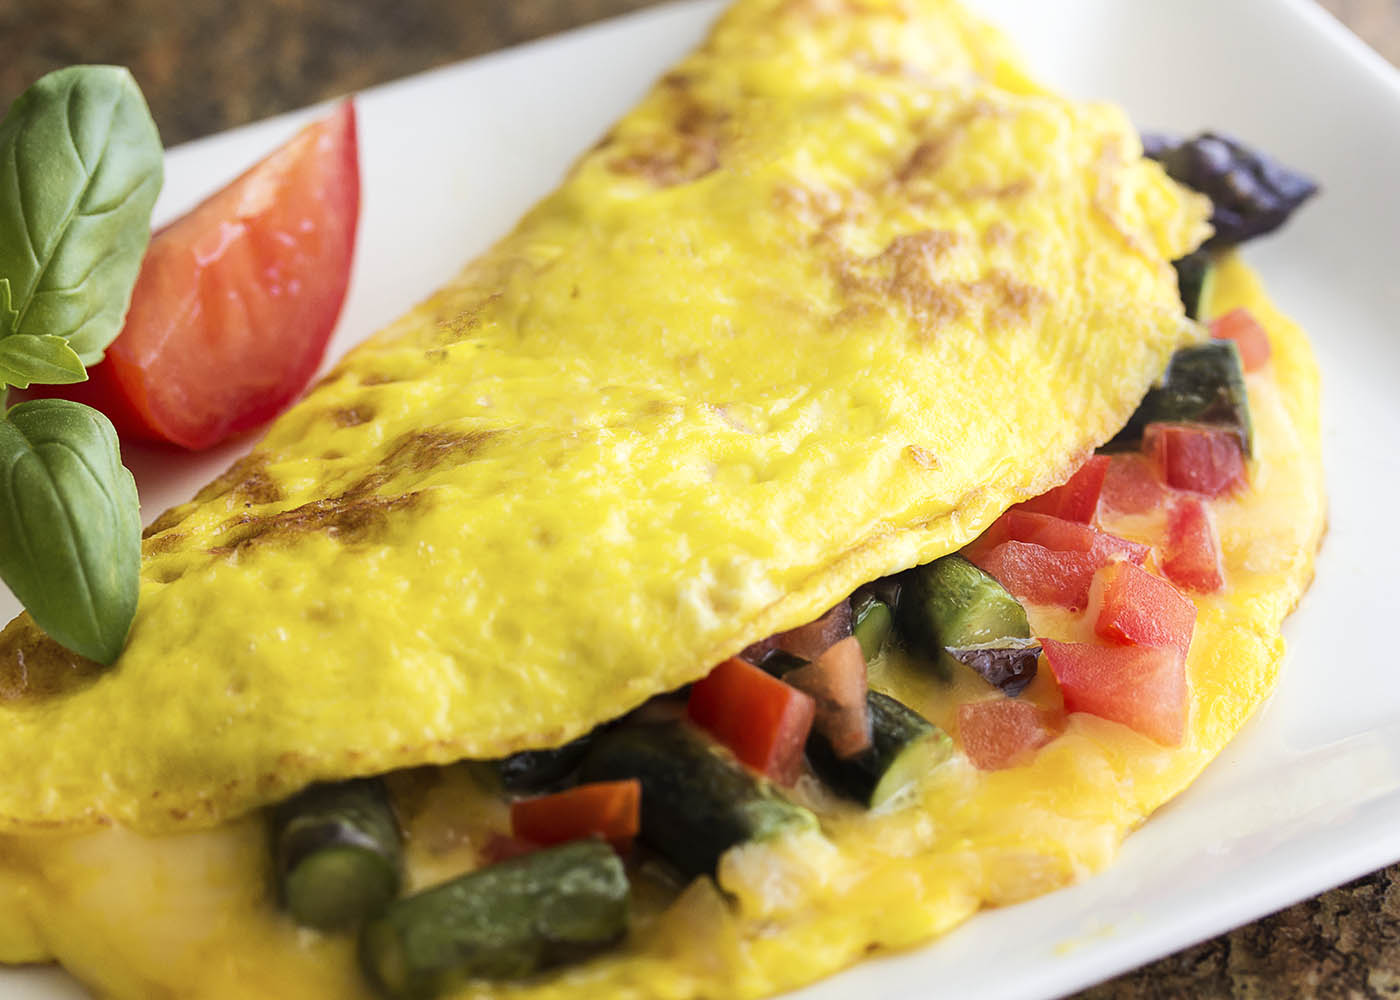 Take advantage of fresh asparagus to make a healthy spring omelette! This asparagus omelette is full of smoked gouda cheese, sauteed onions, and tomatoes. Great for breakfast, brunch, or even dinner. | justalittlebitofbacon.com